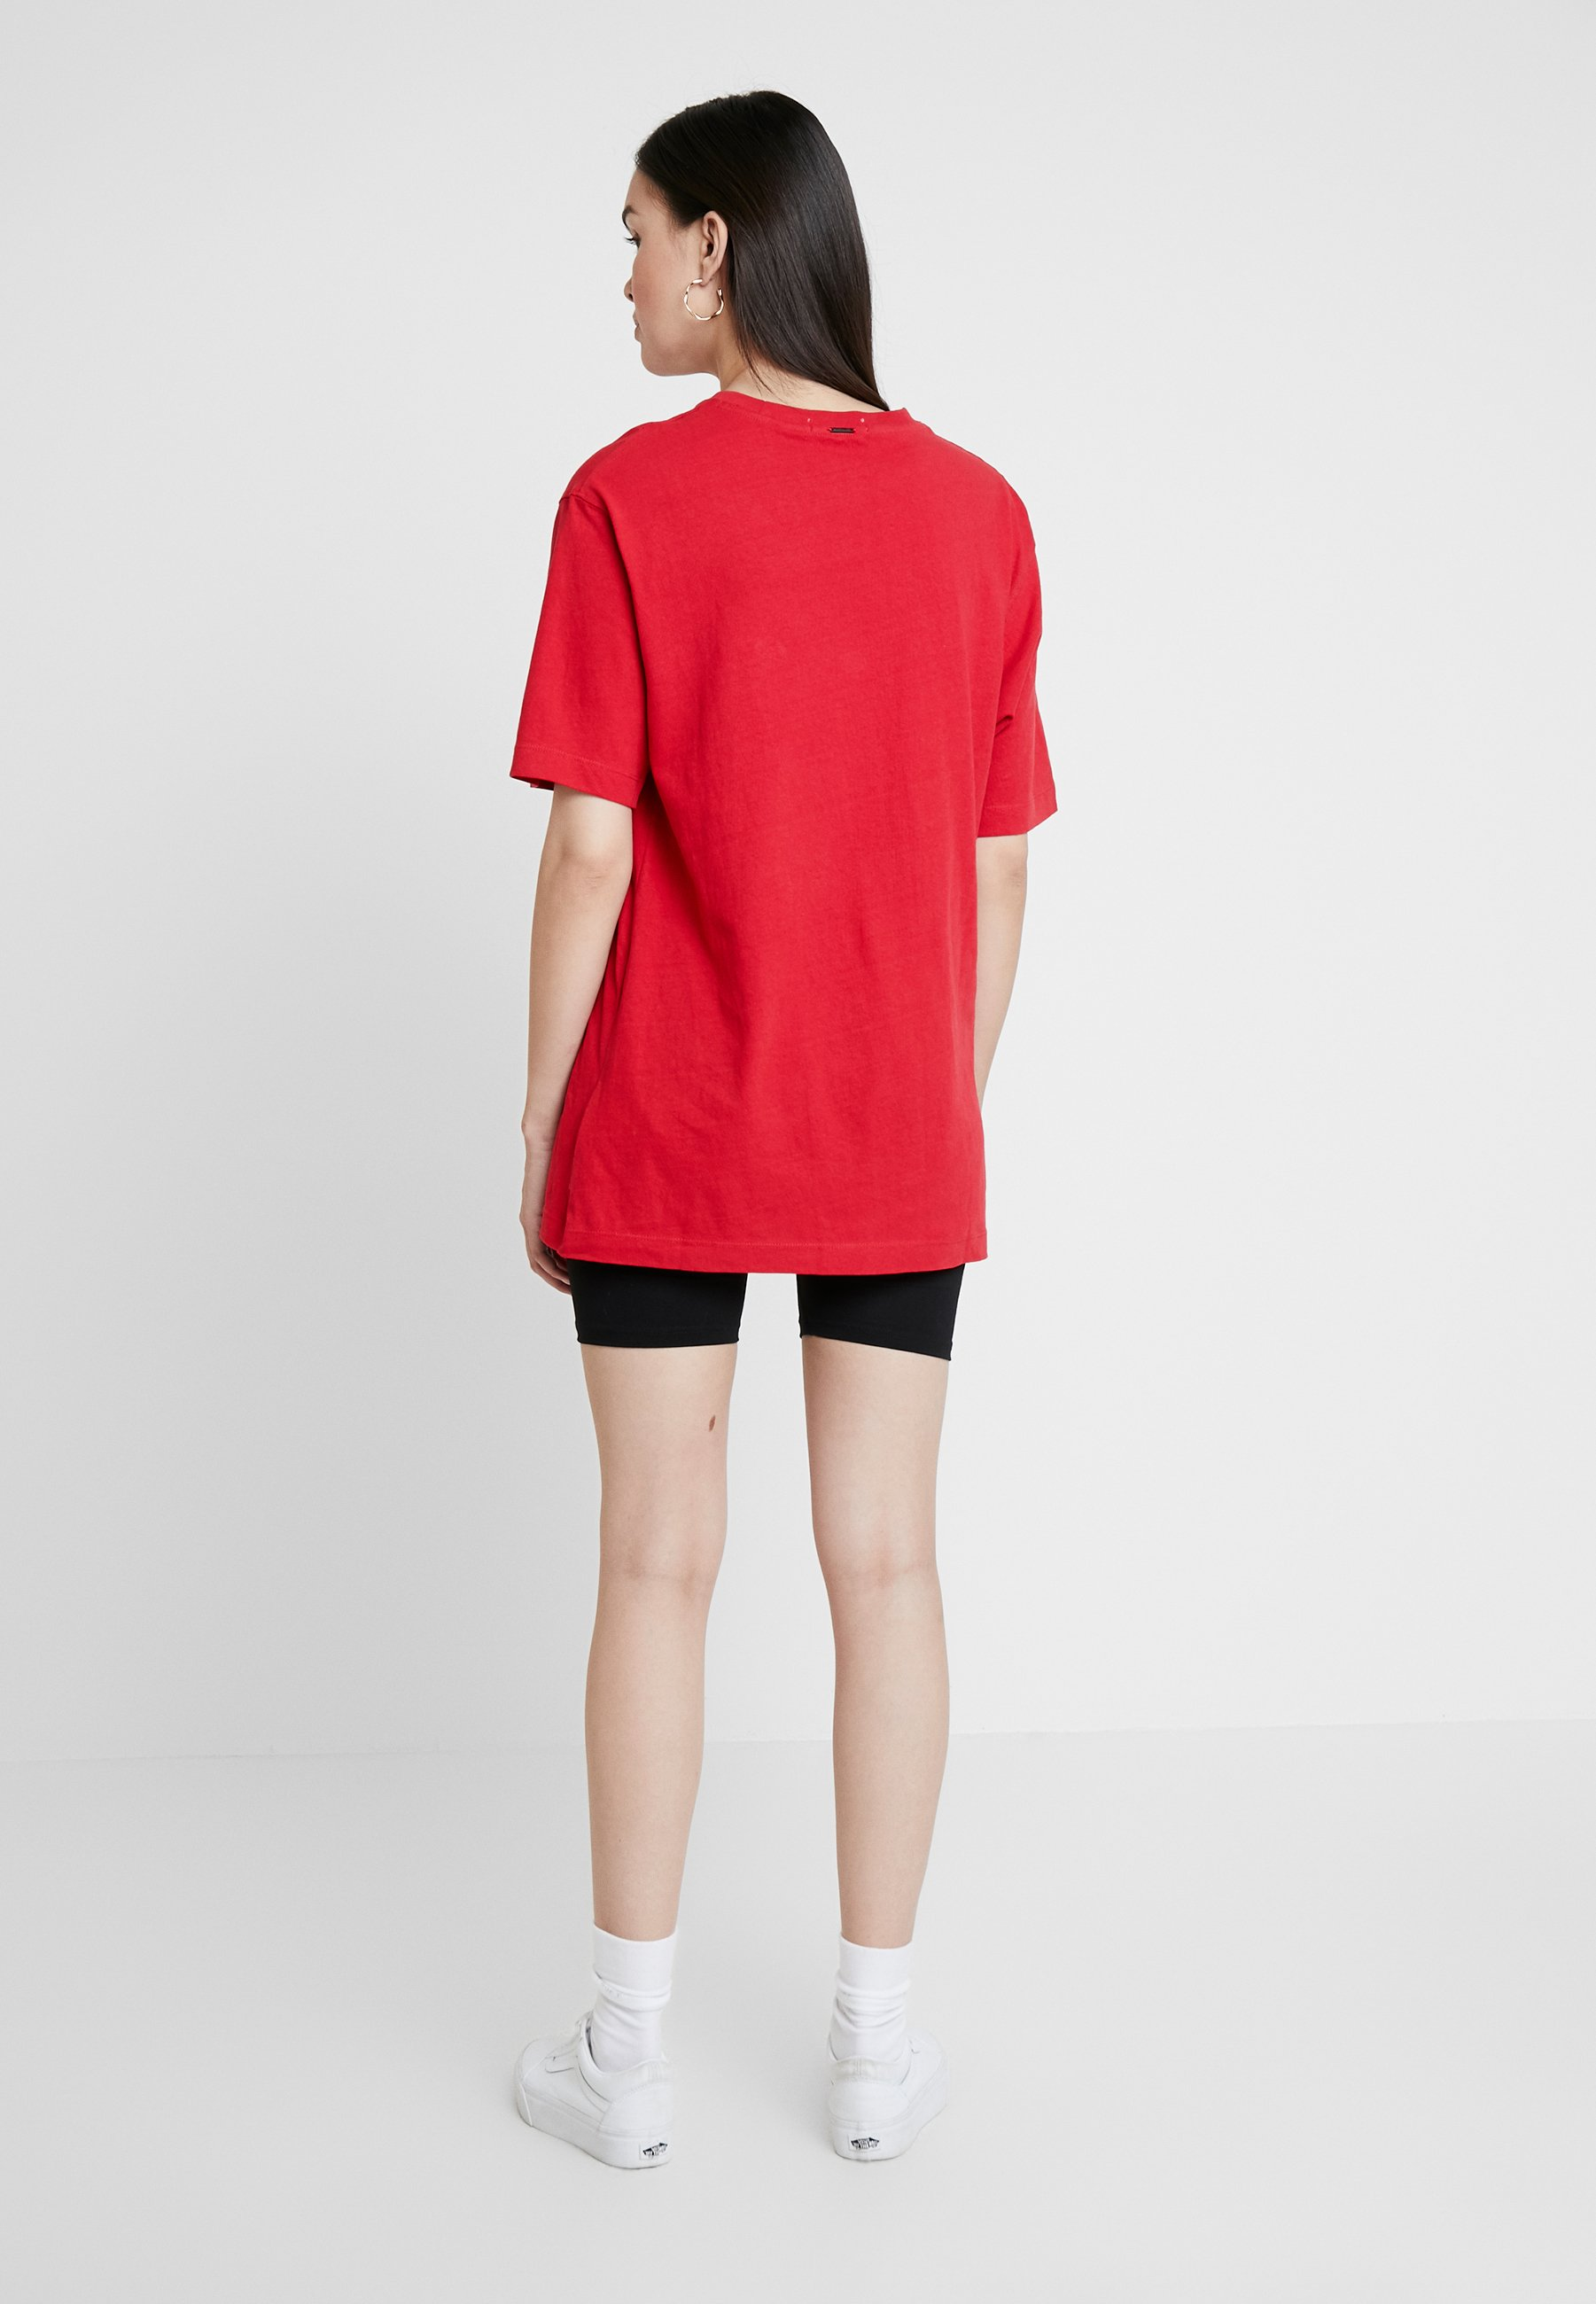 T Replay ImpriméCherry Red Red Replay T ImpriméCherry shirt Replay shirt T shirt ImpriméCherry hrdCxBQts